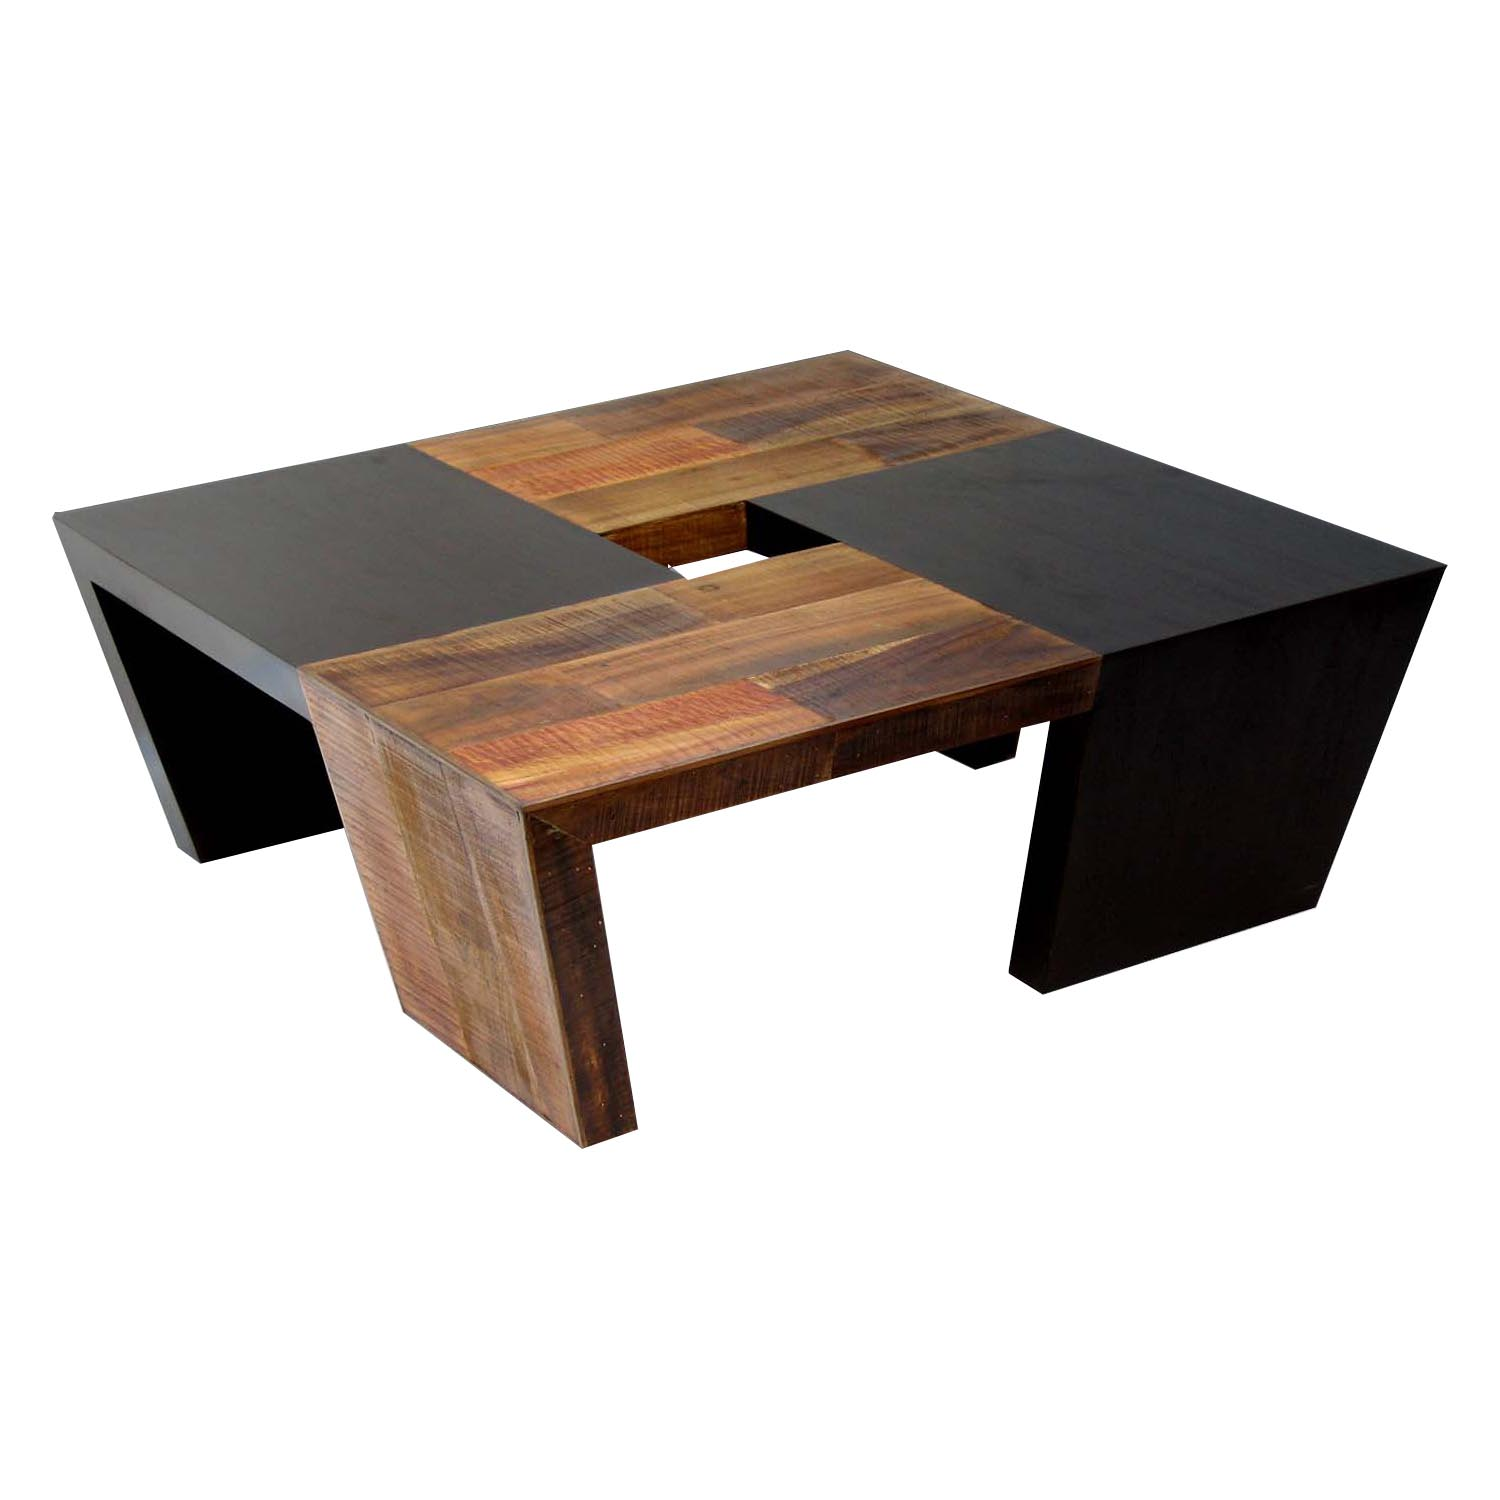 wood coffee table contemporary photo - 2